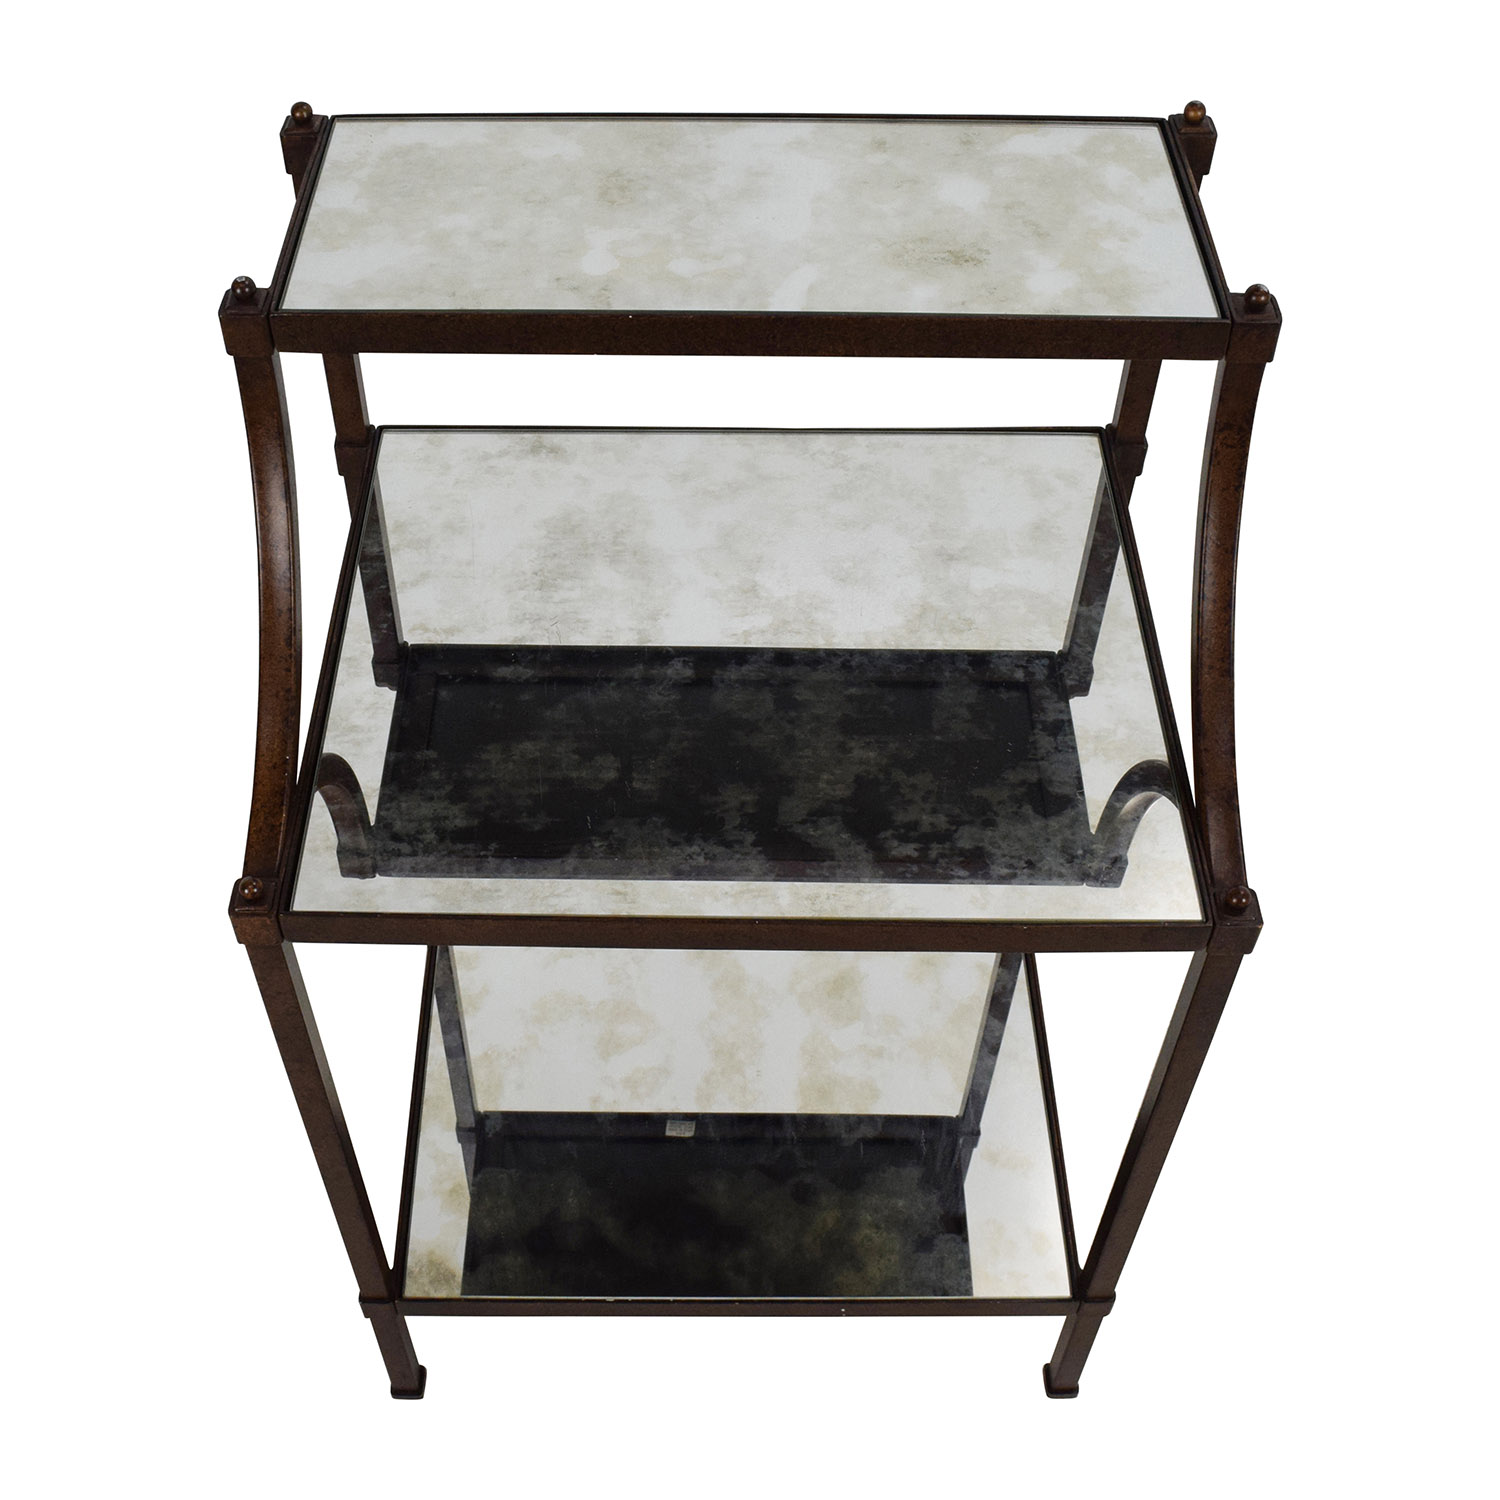 65% OFF - Pottery Barn Pottery Barn Etagere Bedside Table ...